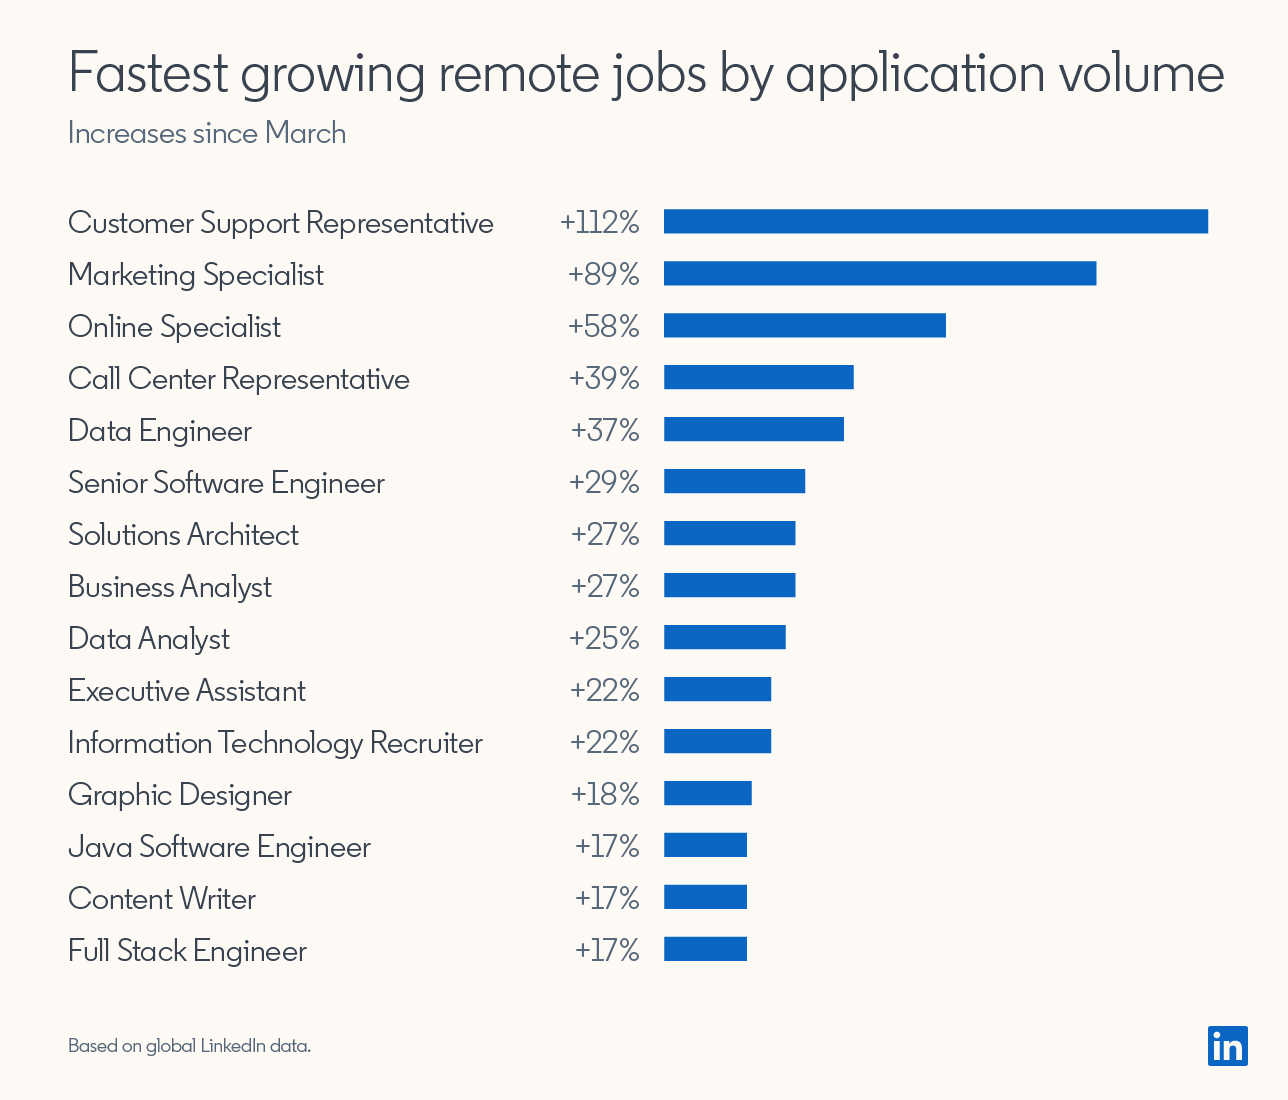 "Bar graph showing ""Fastest growing remote jobs by application volume (increases since March)""  Customer Support Representative: +112% Marketing Specialist: +89% Online Specialist: +58% Call Center Representative: +39% Data Engineer: +37% Senior Software Engineer: +29% Solutions Architect: +27% Business Analyst: +27% Data Analyst: +25% Executive Assistant: +22% Information Technology Recruiter: +22% Graphic Designer: +18% Java Software Engineer: +17% Content Writer: +17% Full Stack Engineer: +17%  *Based on global LinkedIn data"